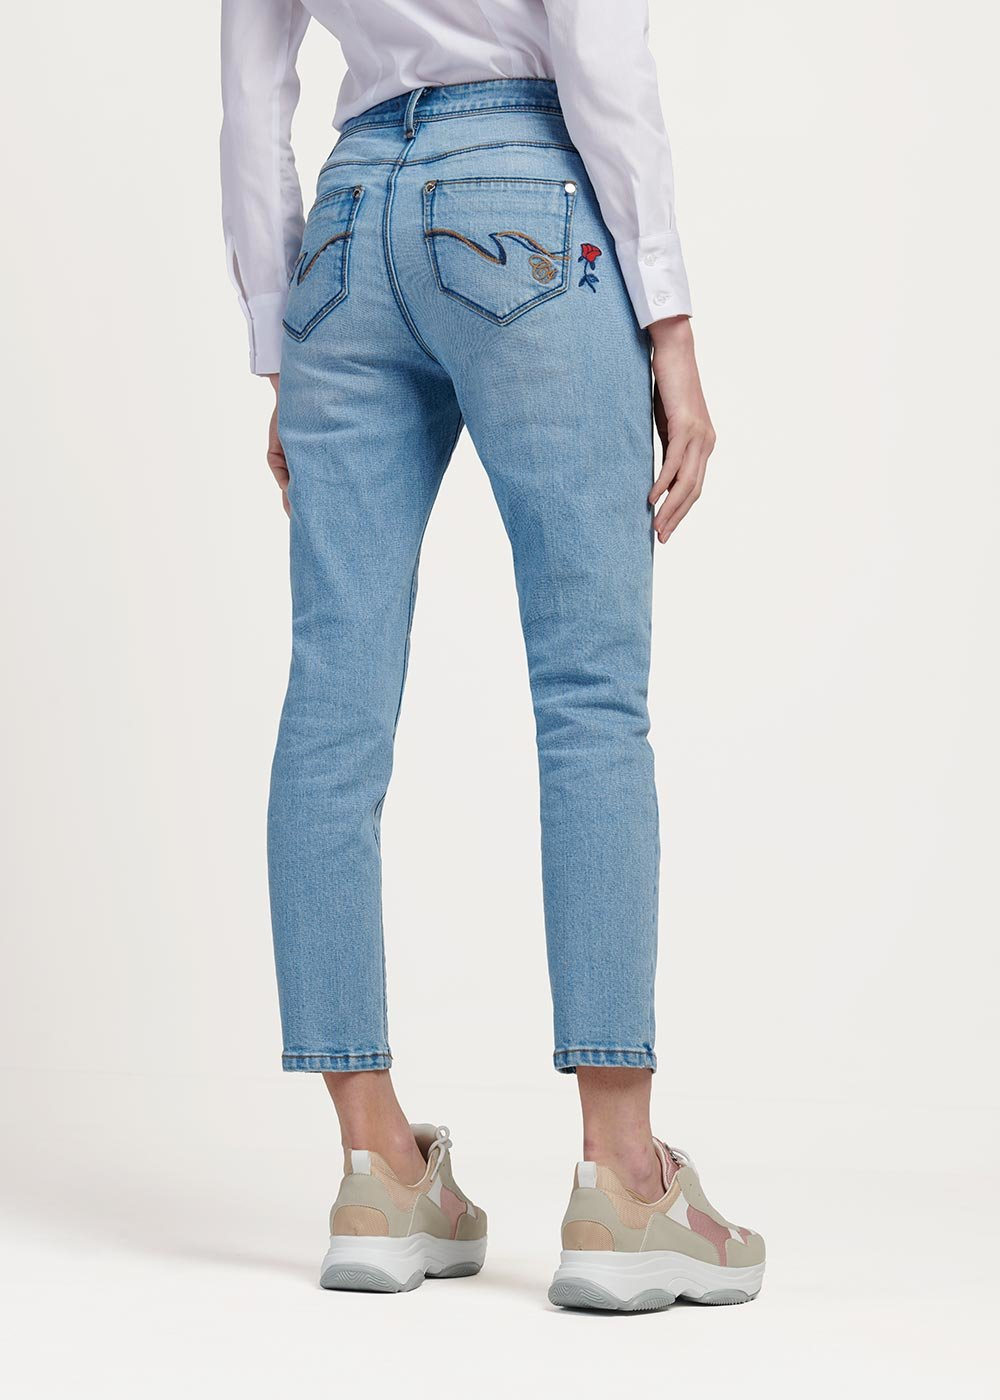 Dennis 5-pocket denim - Light Denim - Woman